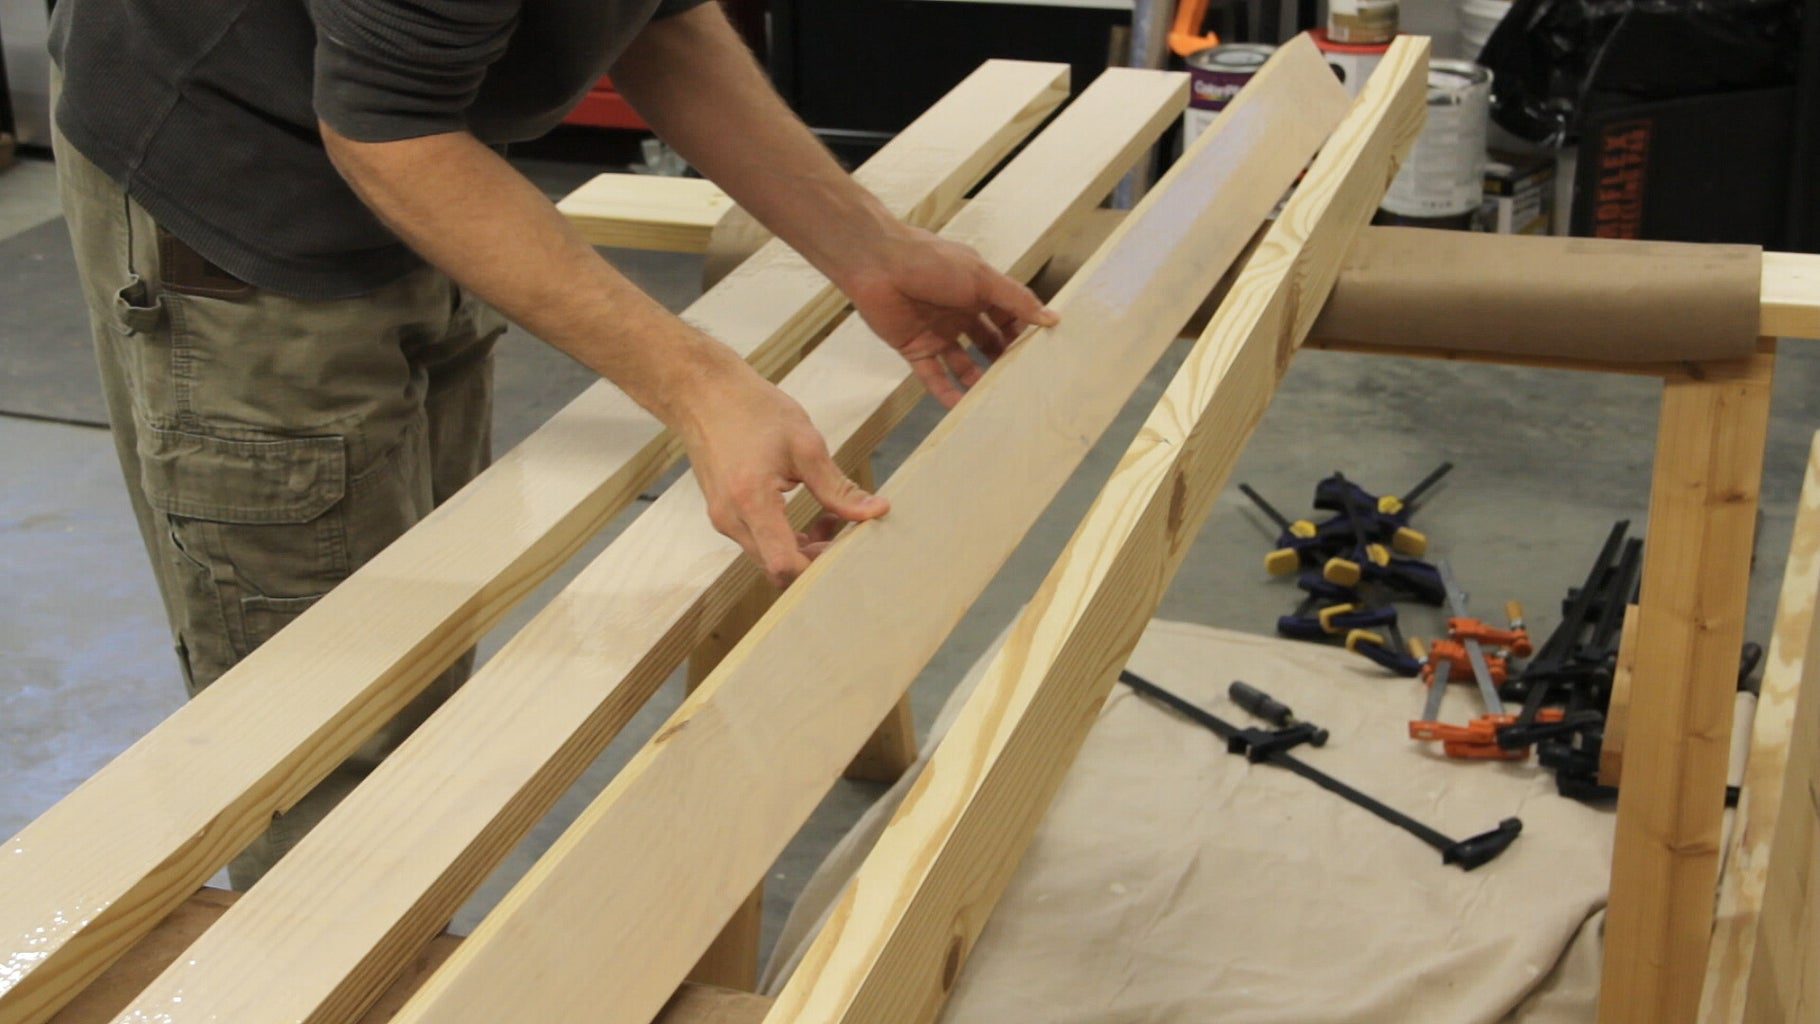 Gluing the Top Sections